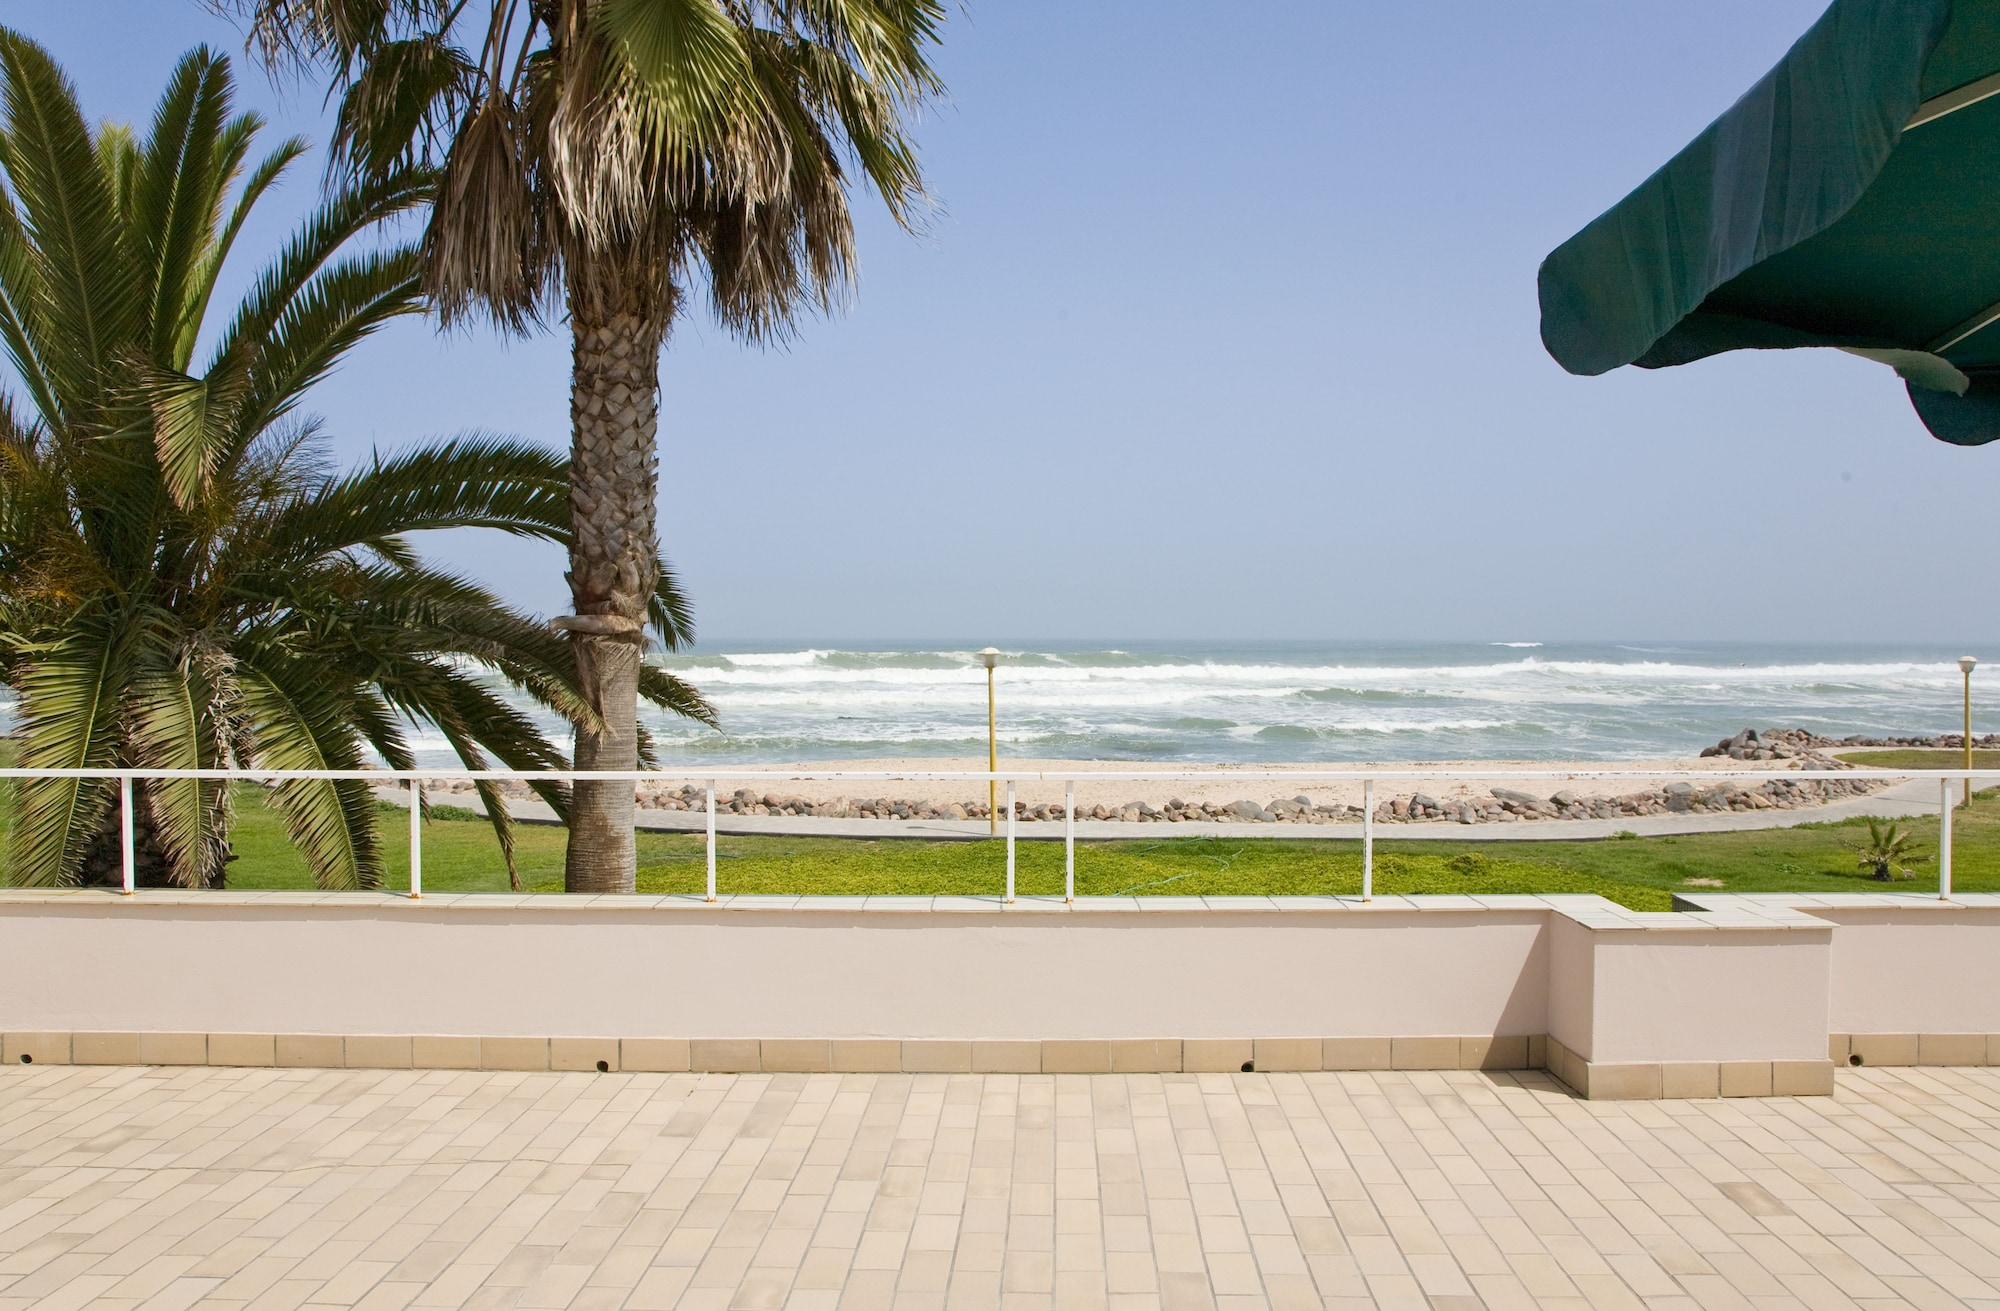 An Der Mole Sef Catering apartment Self catering, Swakopmund